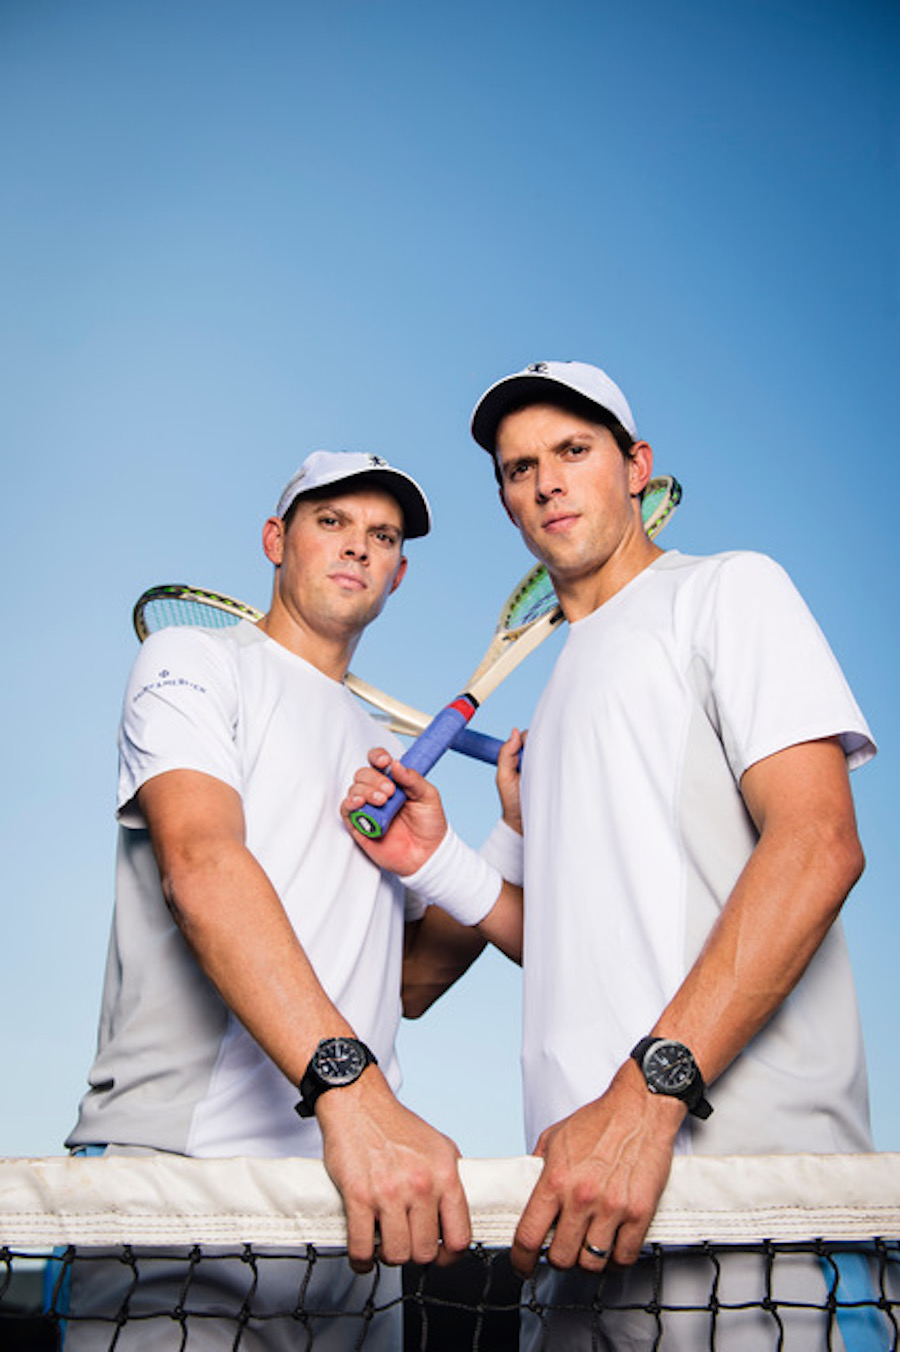 Tennis stars Bob and Mike Bryan join Baume & Mercier as brand ambassadors. Photo taken at the Citi Open at Rock Creek Tennis Center on July 31, 2017 in Washington, DC. (Photo by © 2017. Patrick McDermott Photography, LLC. All Rights Reserved.)